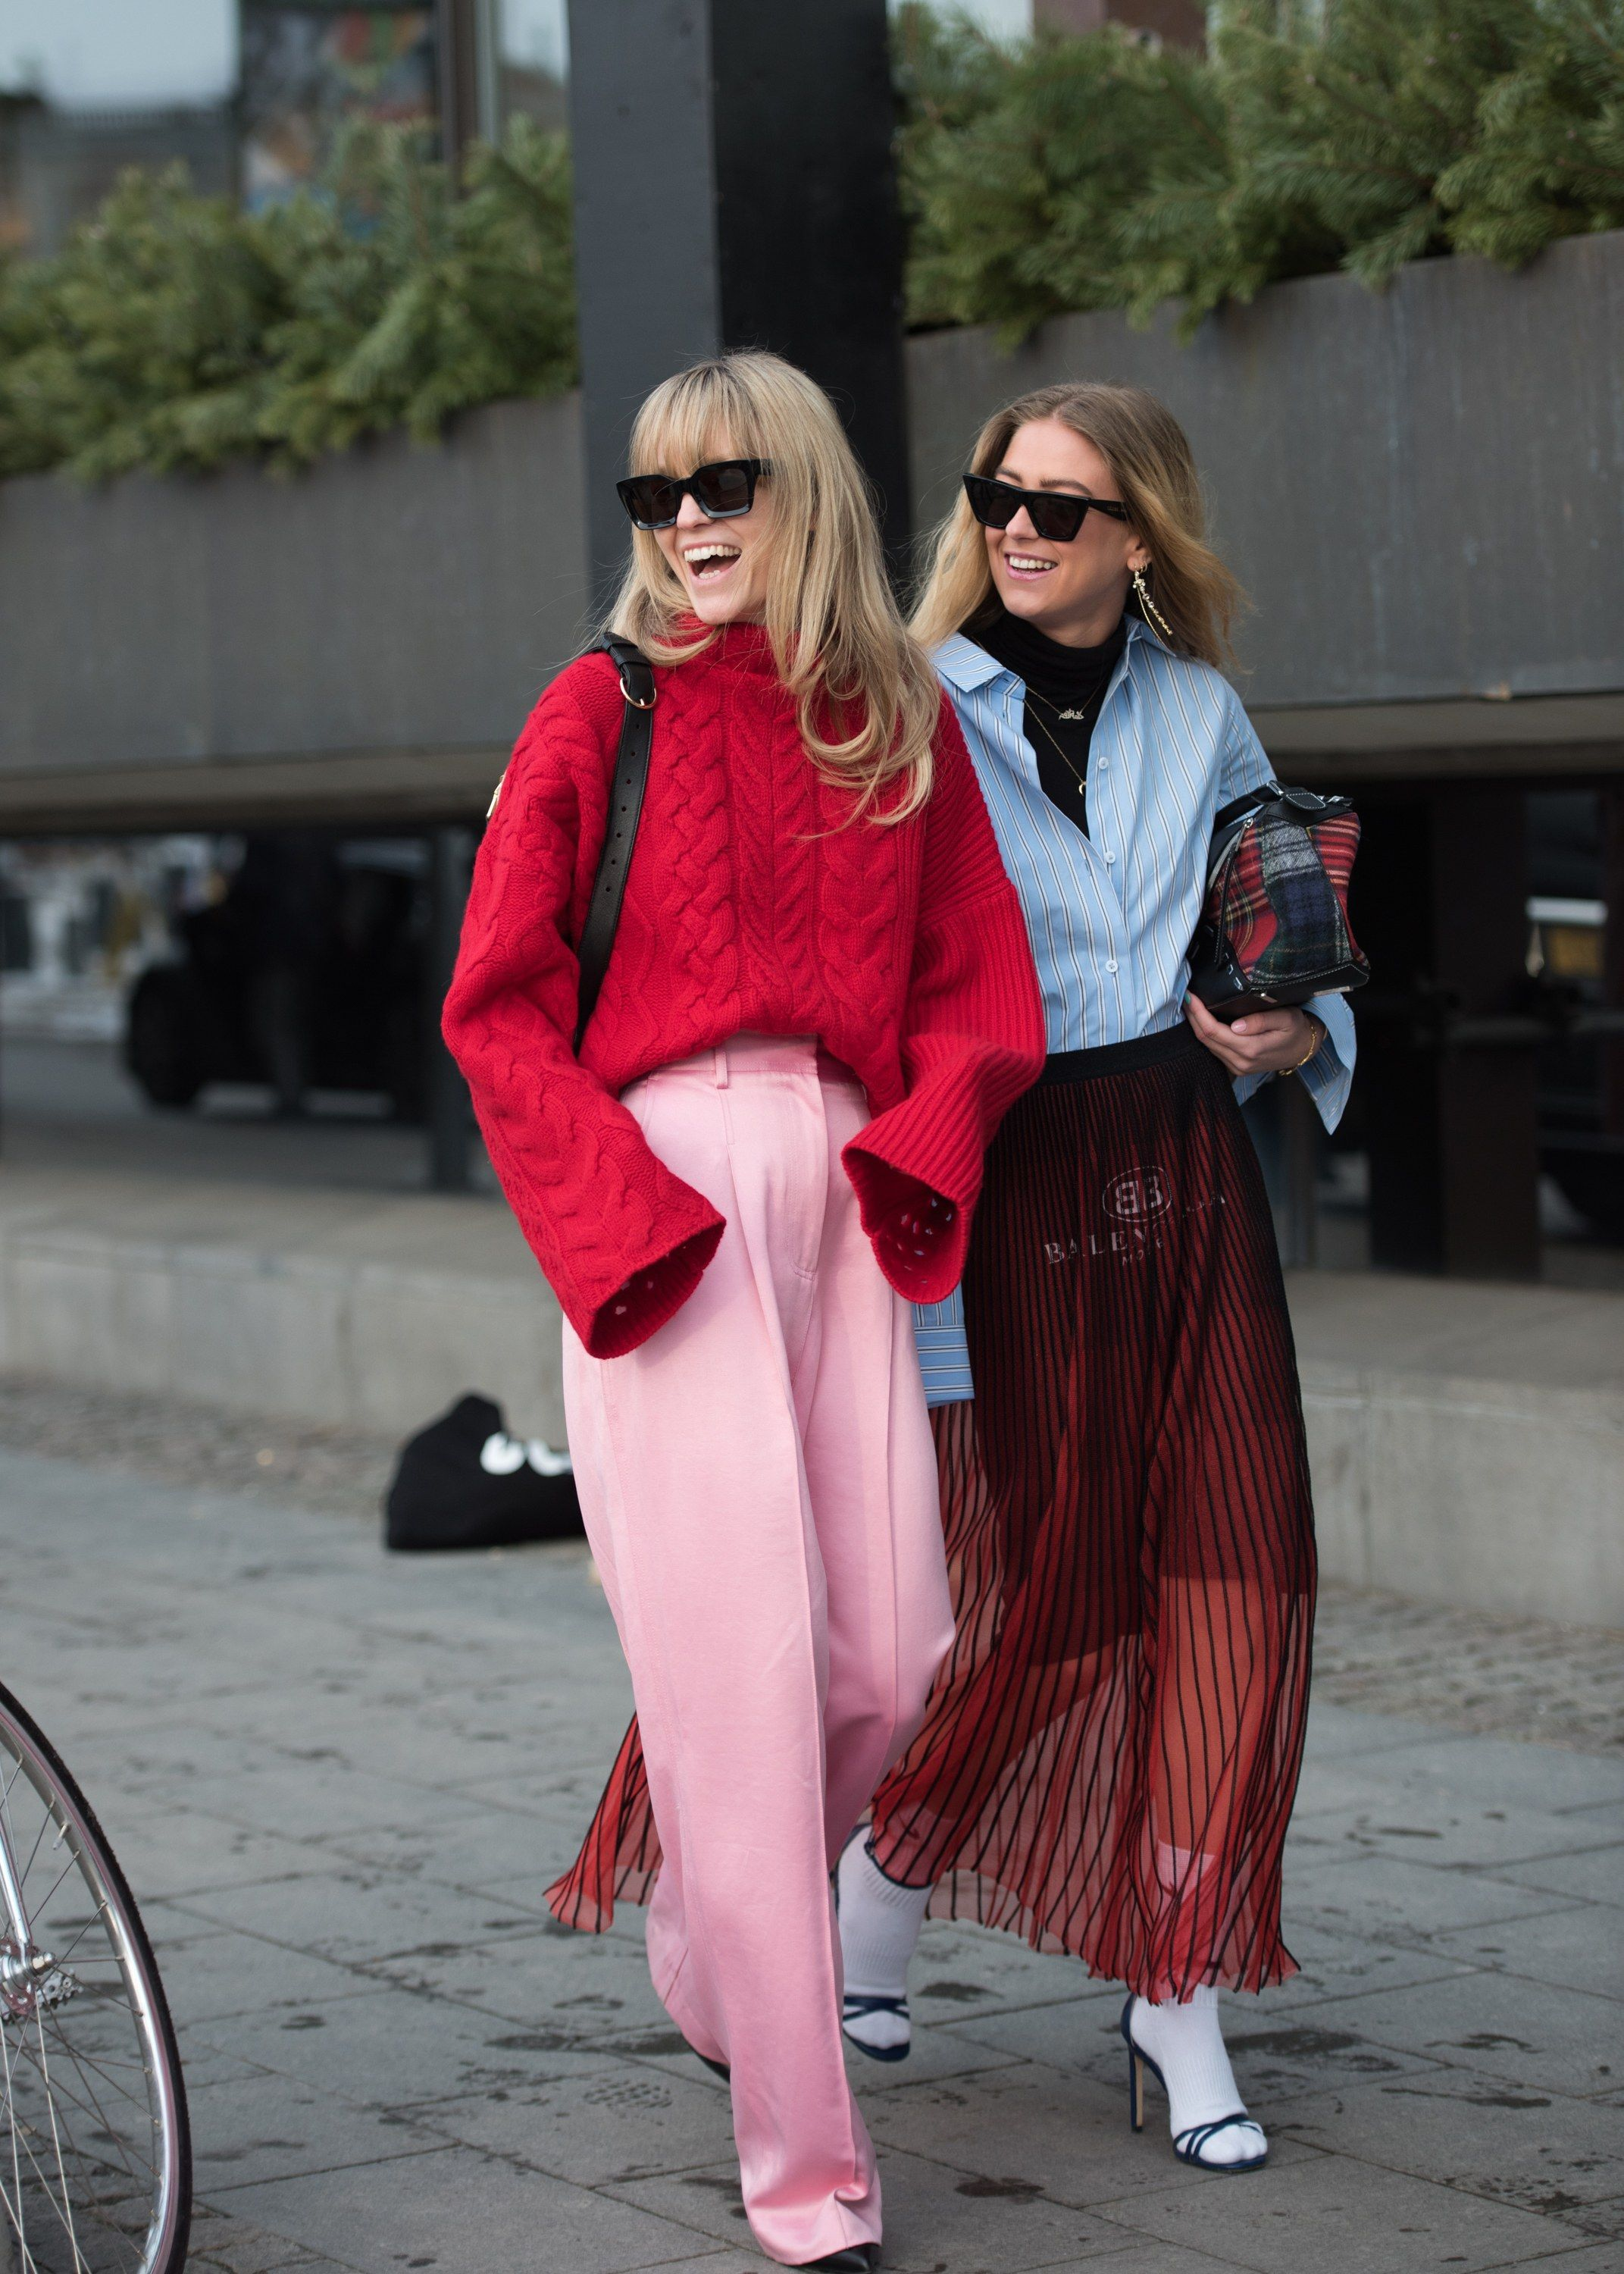 Fall Street Style Fashion For Women 2019: The Best Street Style From Stockholm Fashion Week Fall